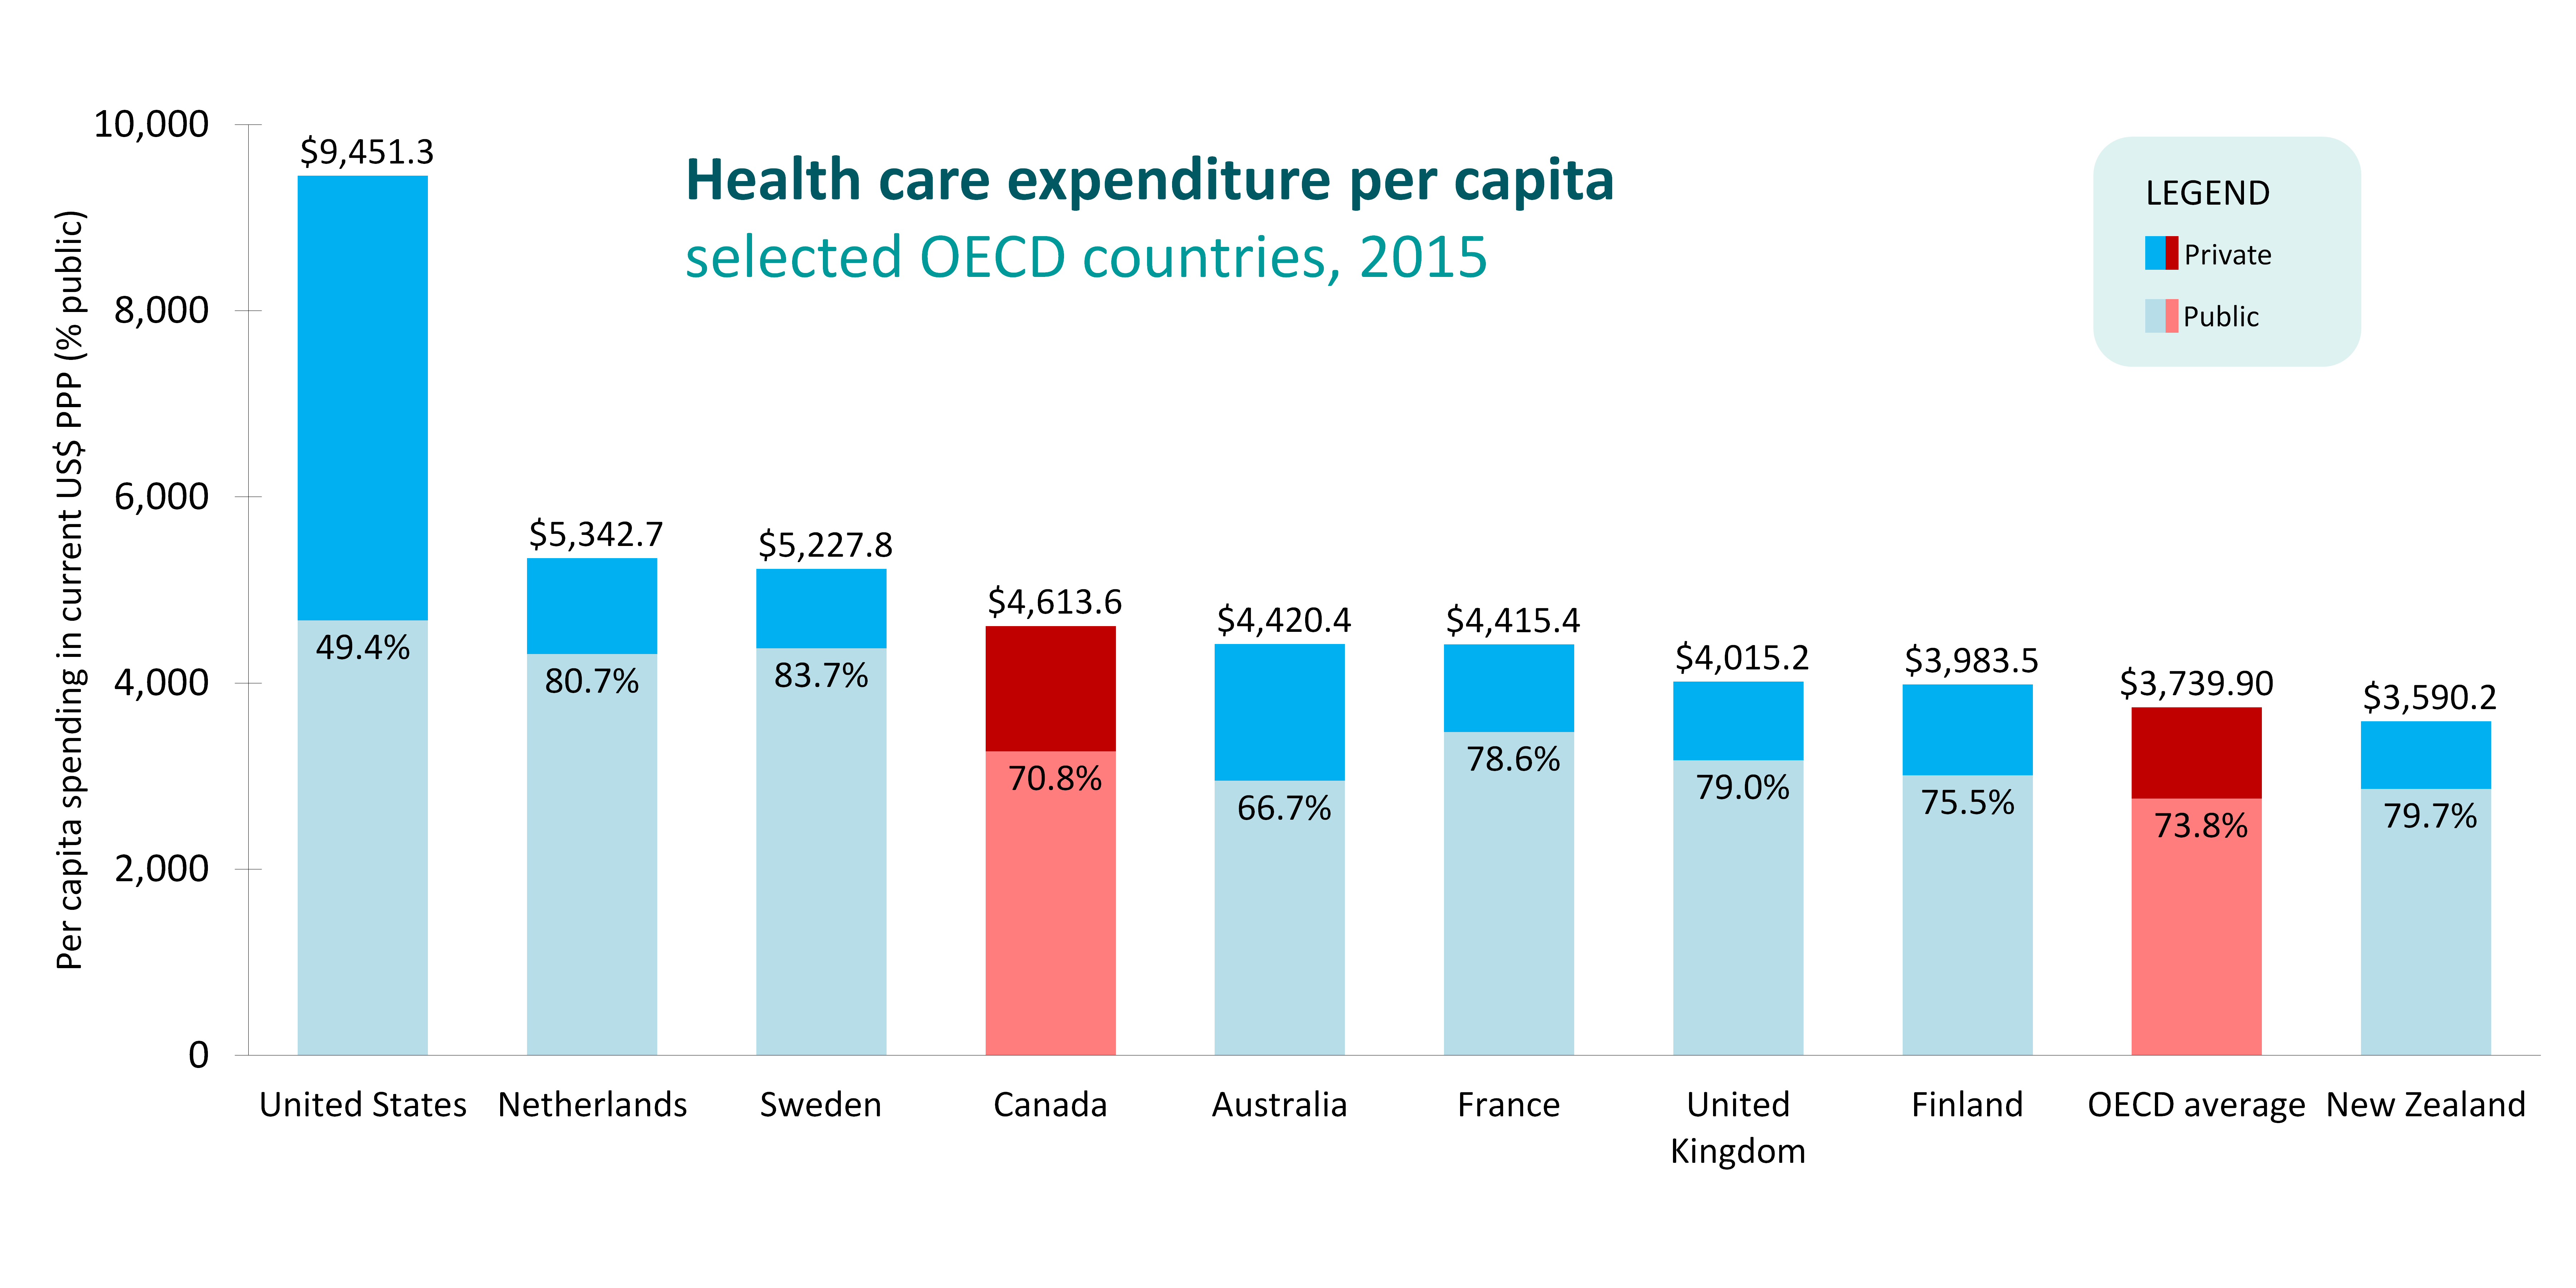 IHE in your pocket health expenditure image